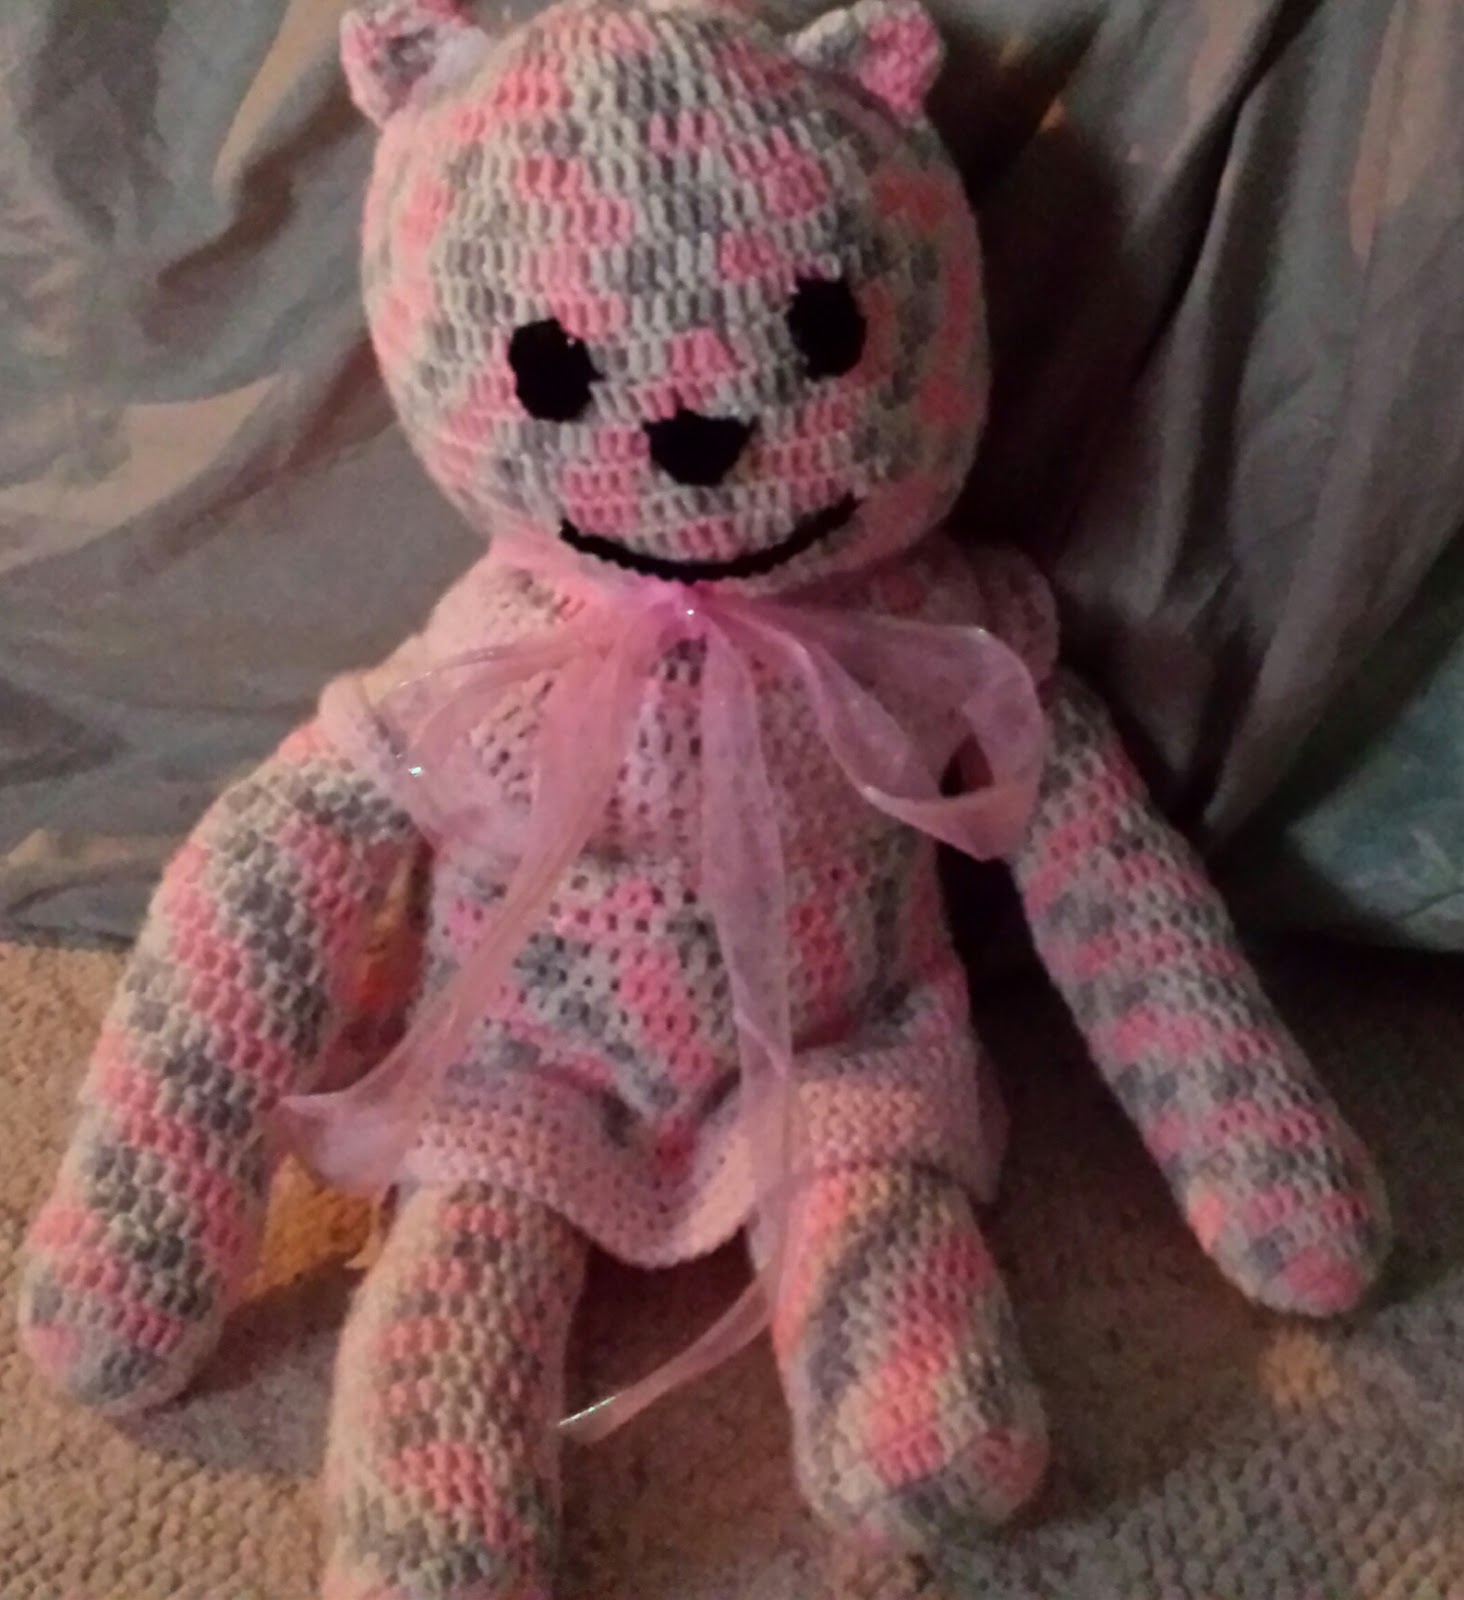 Craftdrawer crafts favorite crochet teddy bear pattern crochet my latest project is a crocheted teddy bear made using bernat softee baby yarn in the color pink flannel i used the free buttercup bear pattern but bankloansurffo Choice Image